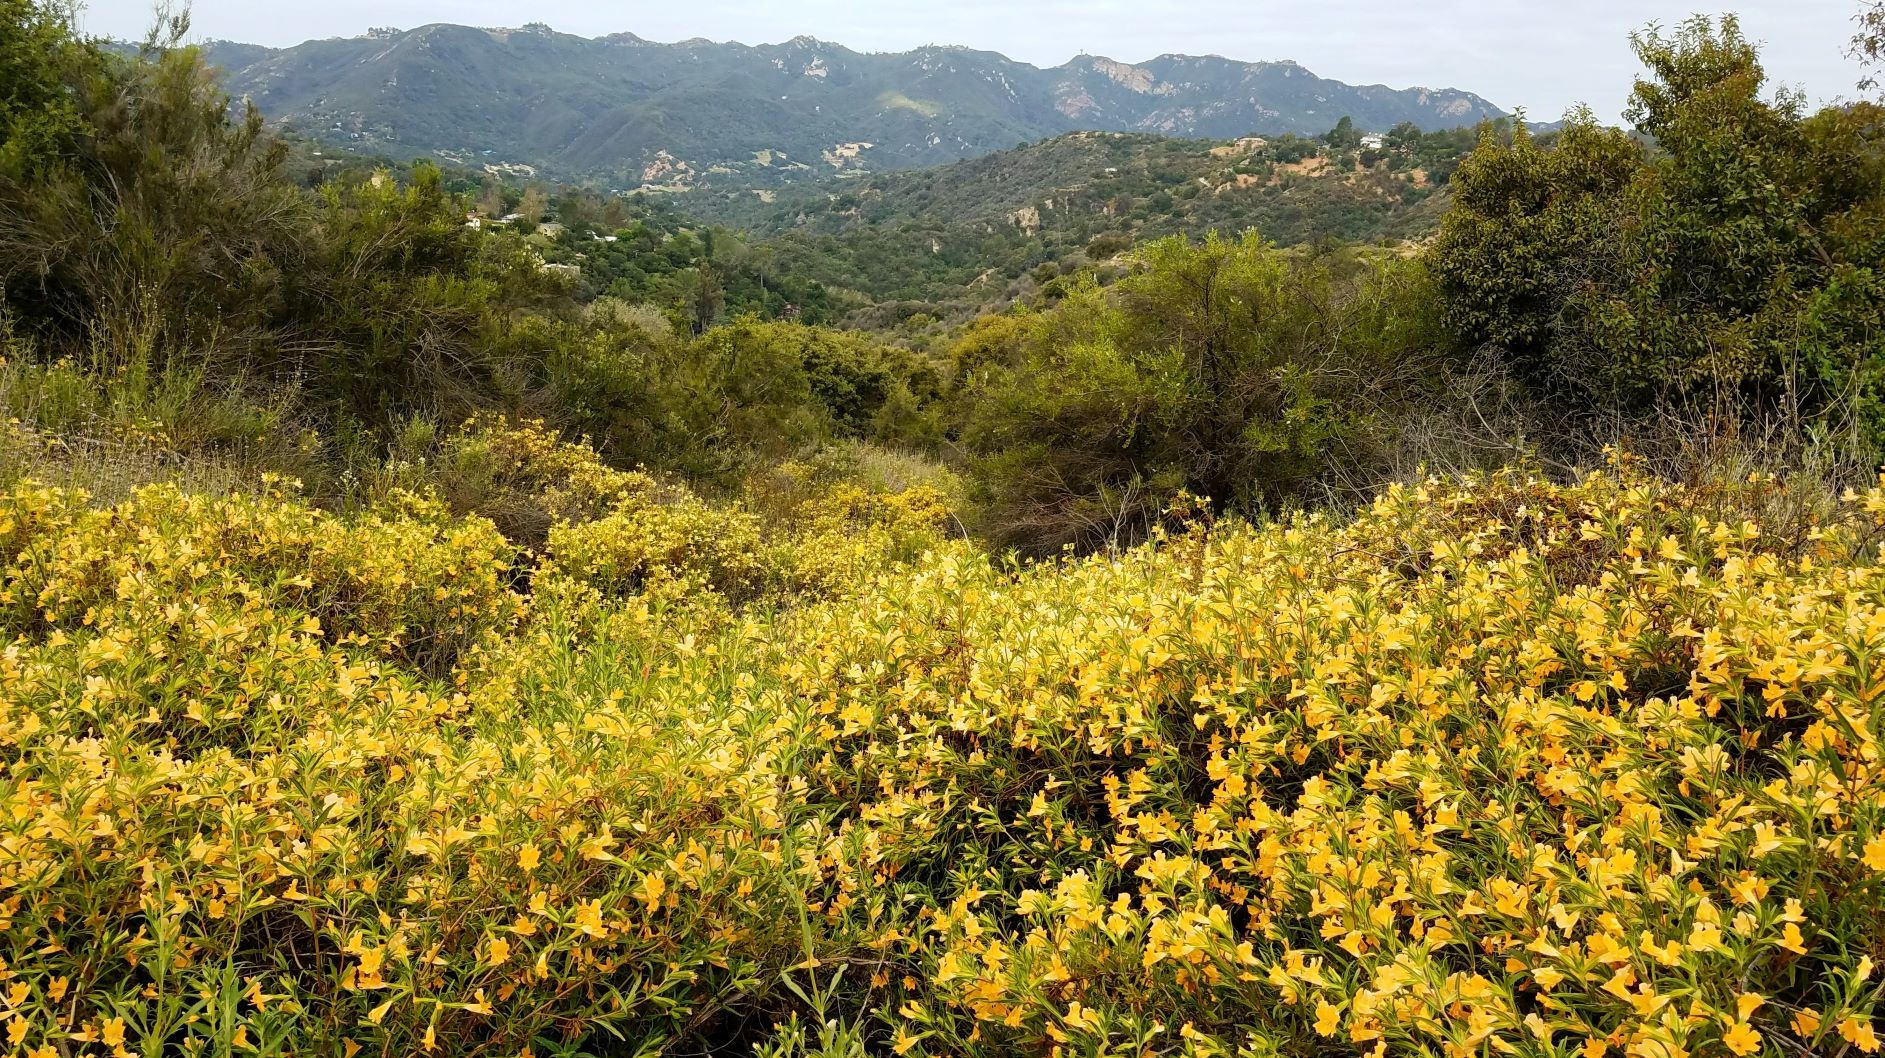 Photo from Musch Trail of wild flowers in Topanga